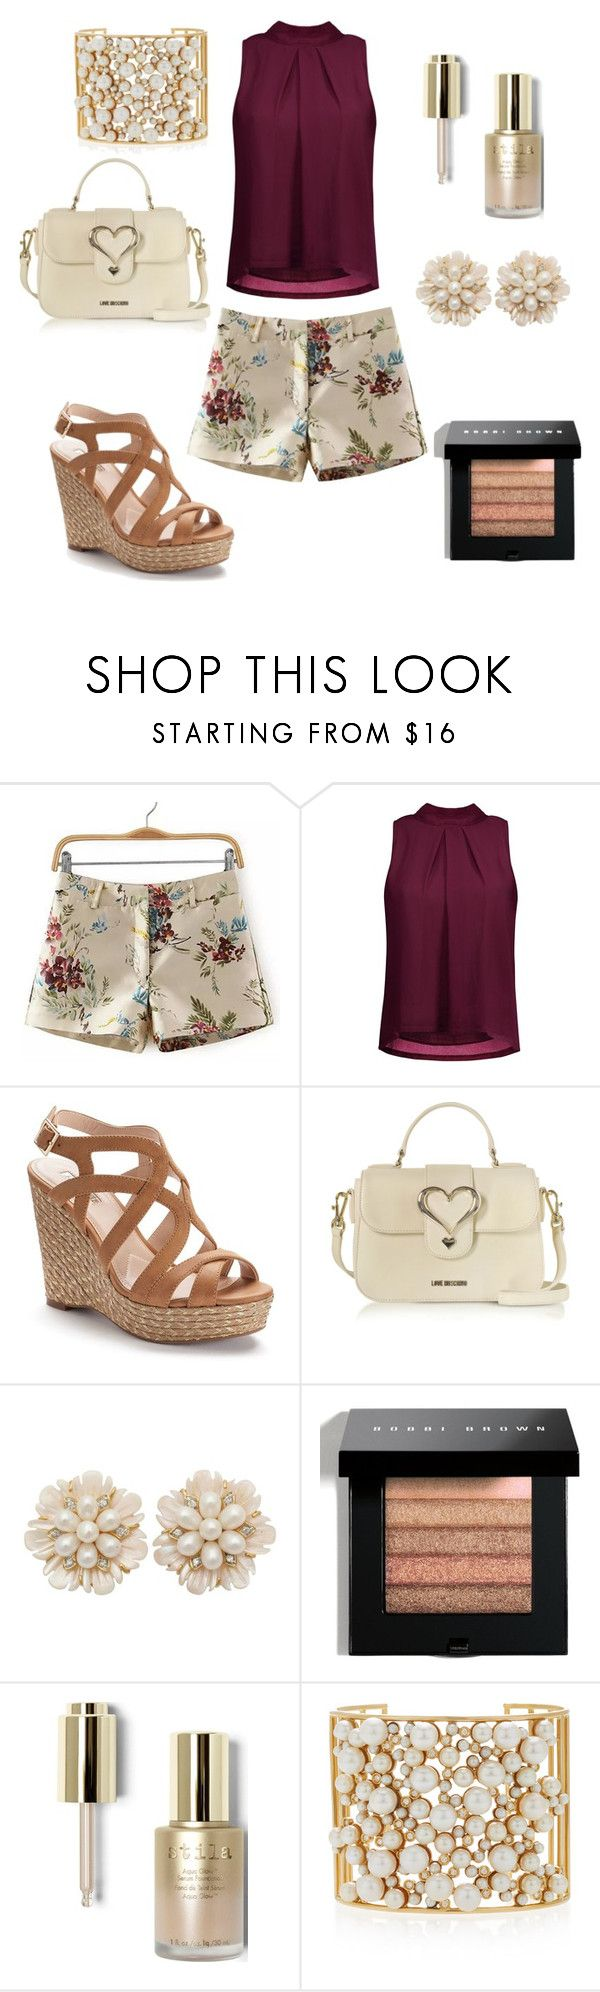 """summer vibes"" by krissybob ❤ liked on Polyvore featuring Jennifer Lopez, Love Moschino, Bobbi Brown Cosmetics, Stila and Nancy Newberg"